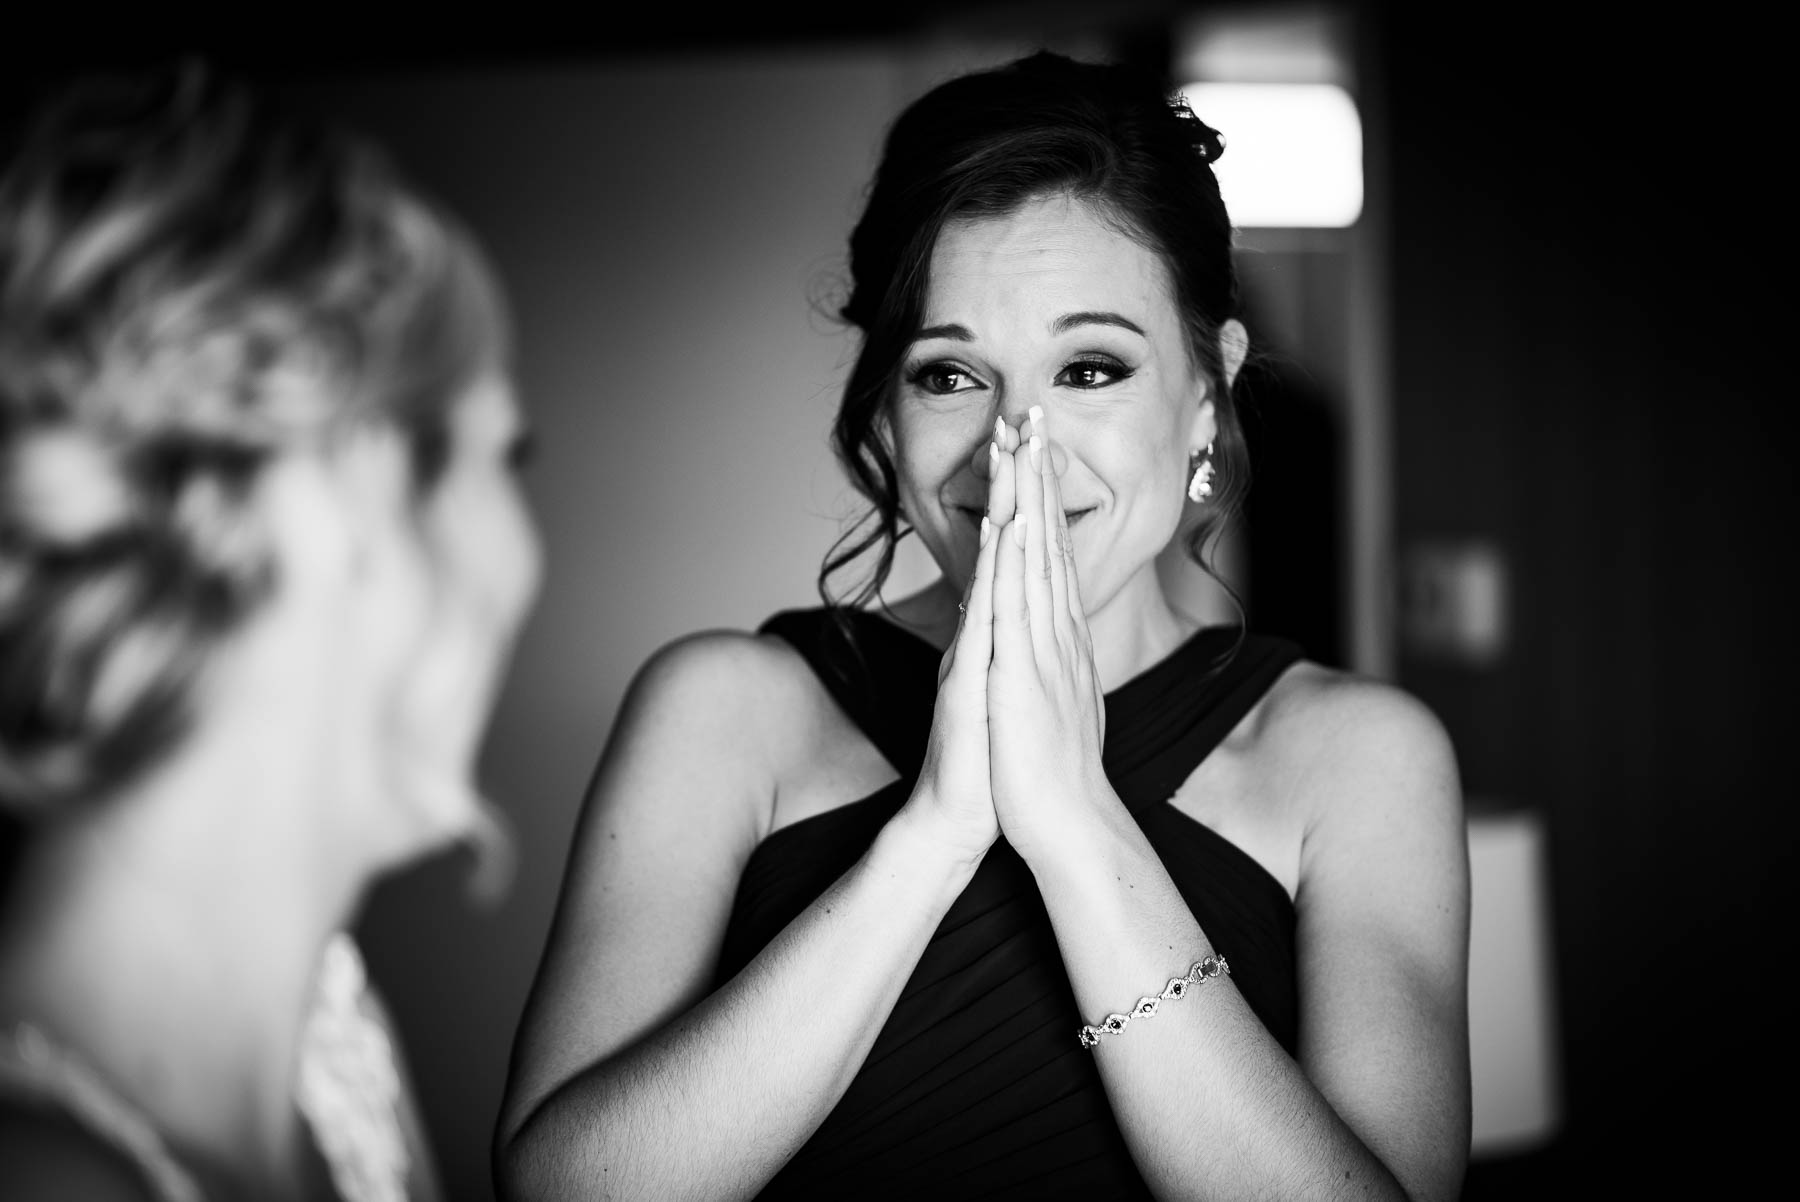 Maid of honor reacts emotionally to seeing the bride before her St. Charles Country Club wedding.